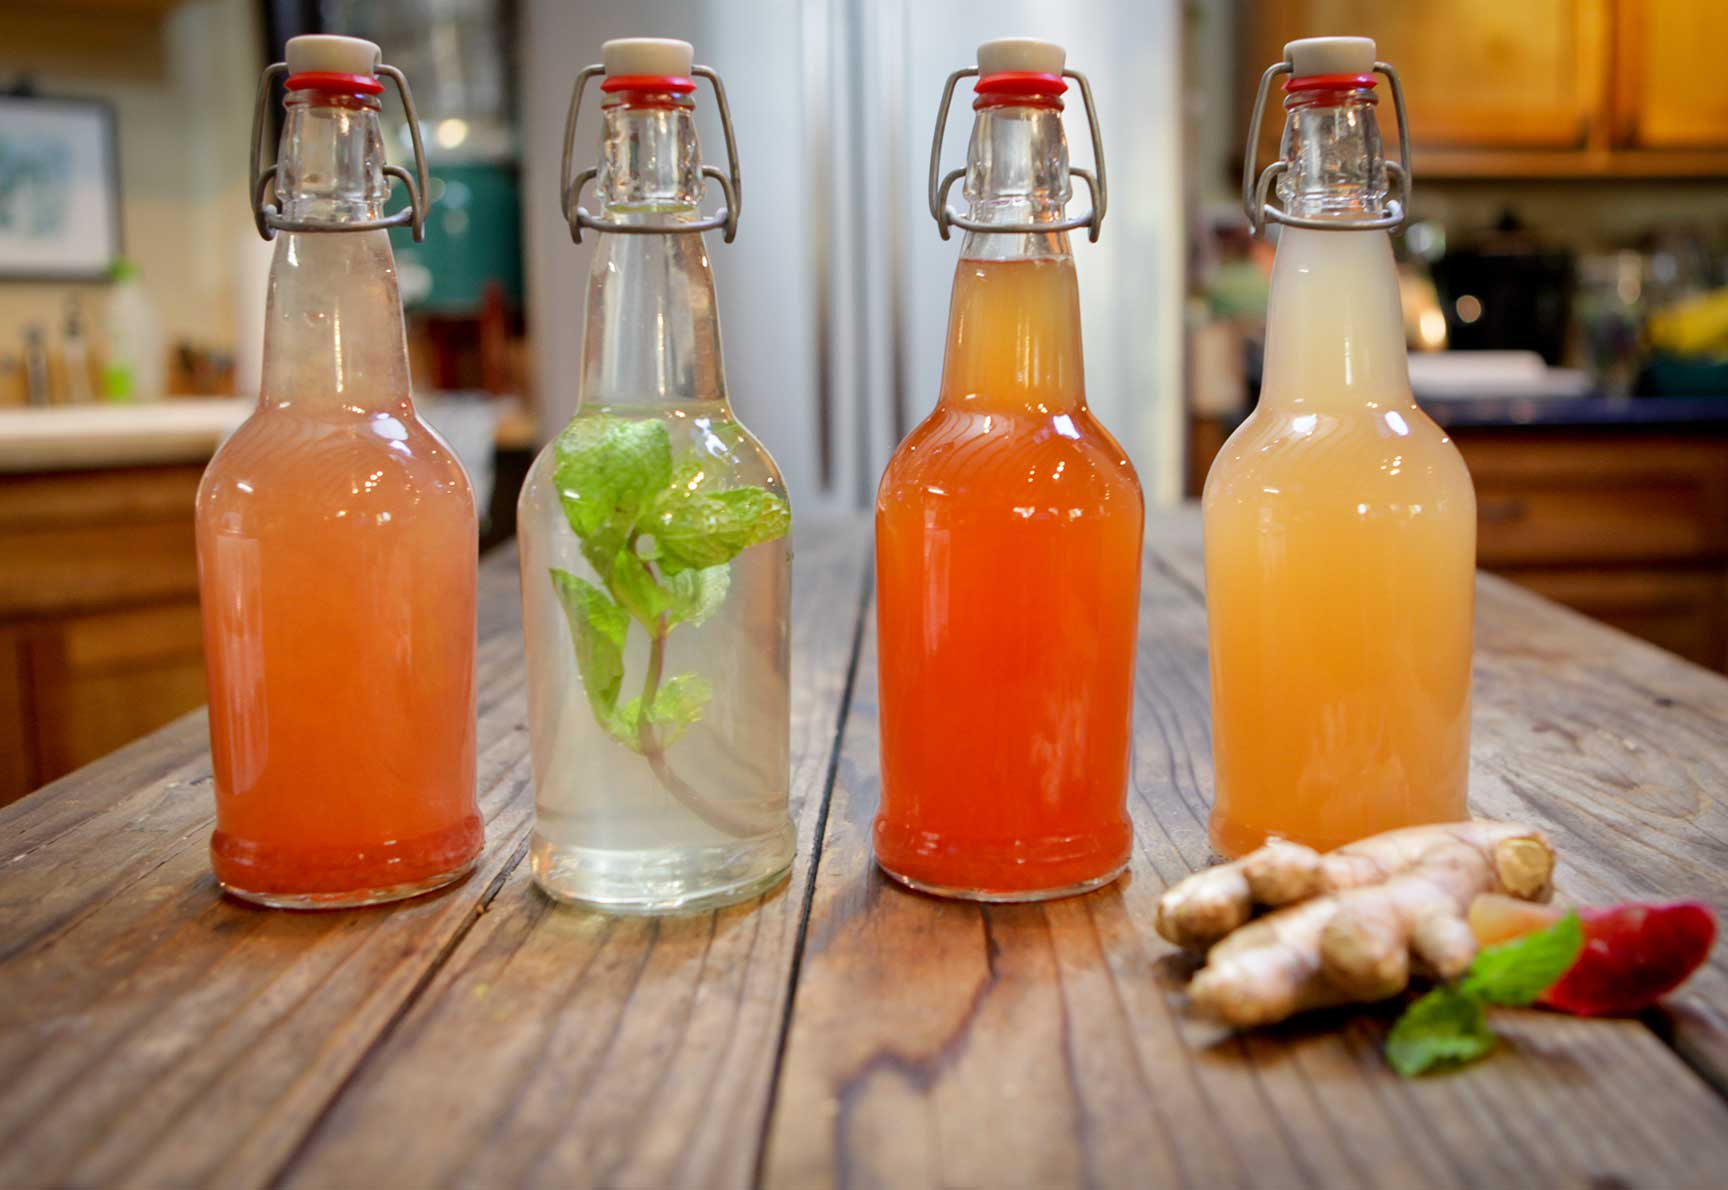 Getting Started With Water Kefir A Non Dairy Probiotic